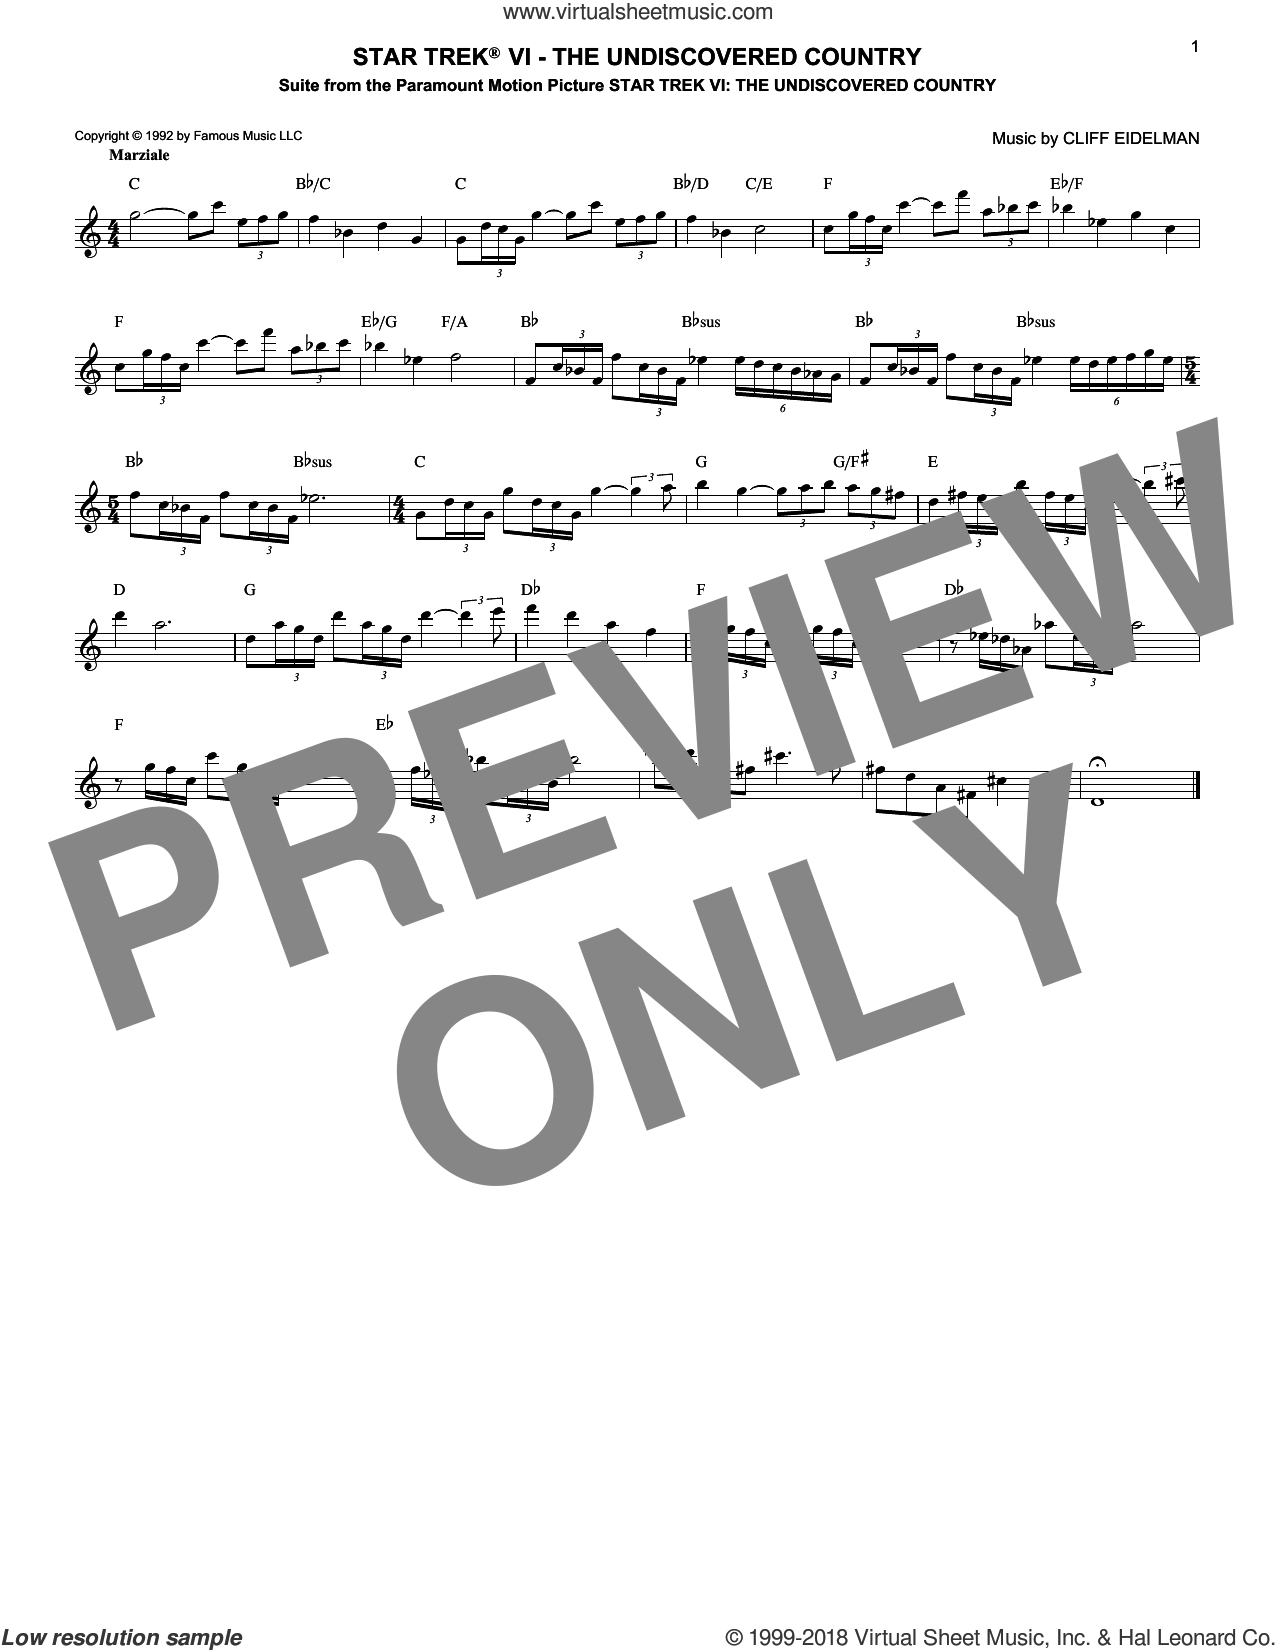 Star Trek VI - The Undiscovered Country sheet music for voice and other instruments (fake book) by Cliff Eidelman, classical score, intermediate skill level